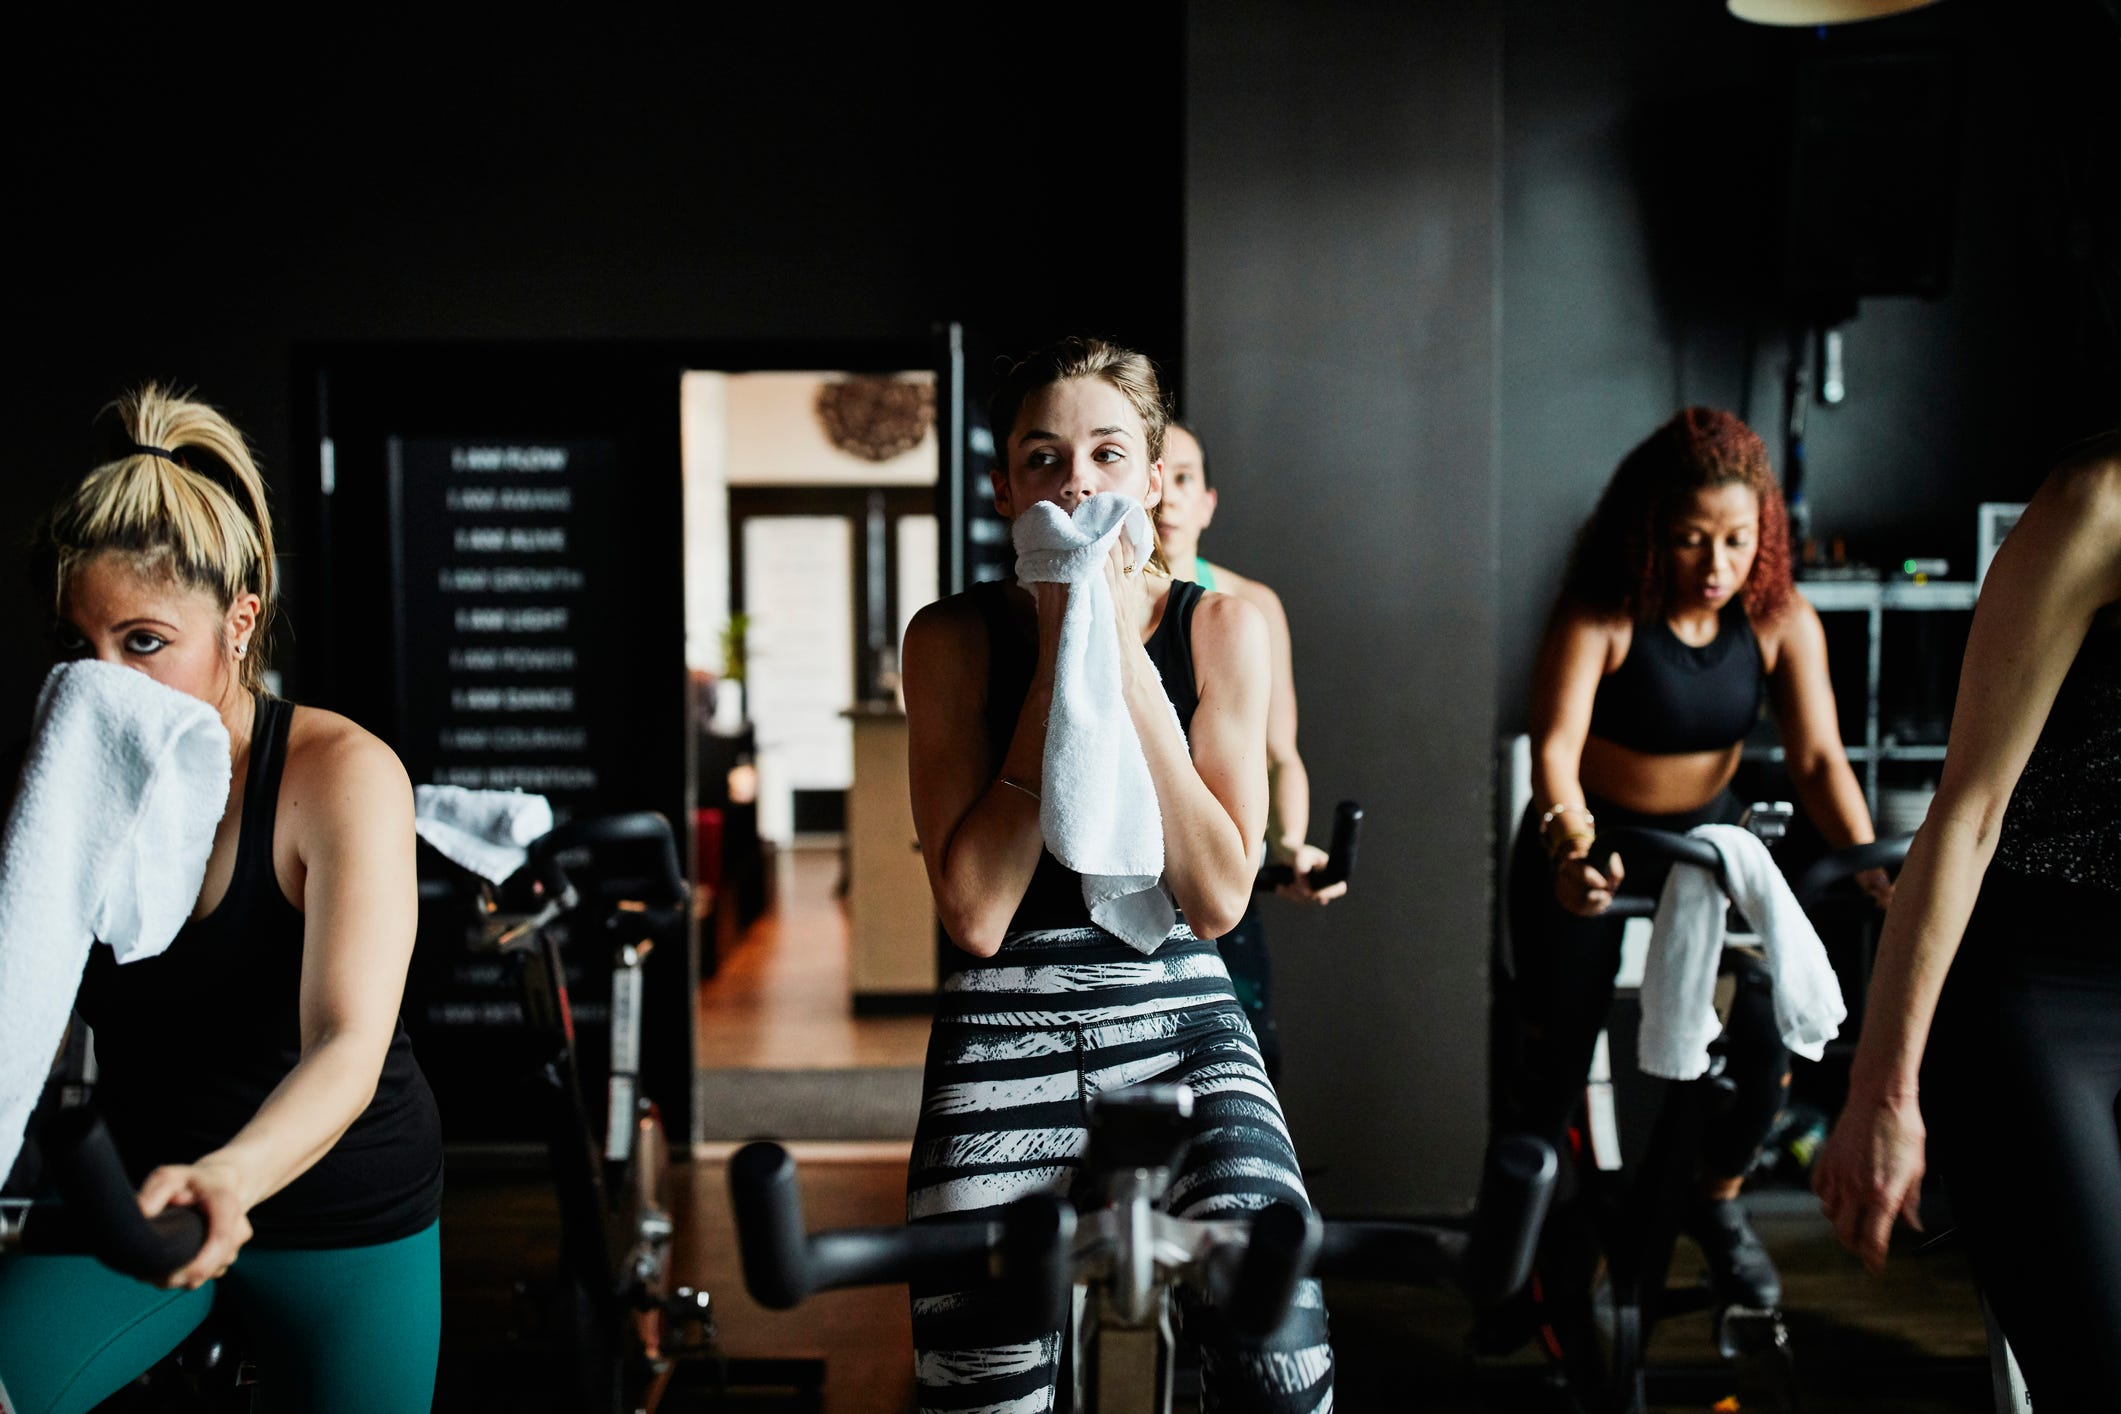 A virologist says you don't need to avoid the gym if you're worried about the coronavirus, but there are a few simple steps you can take to stay healthy: